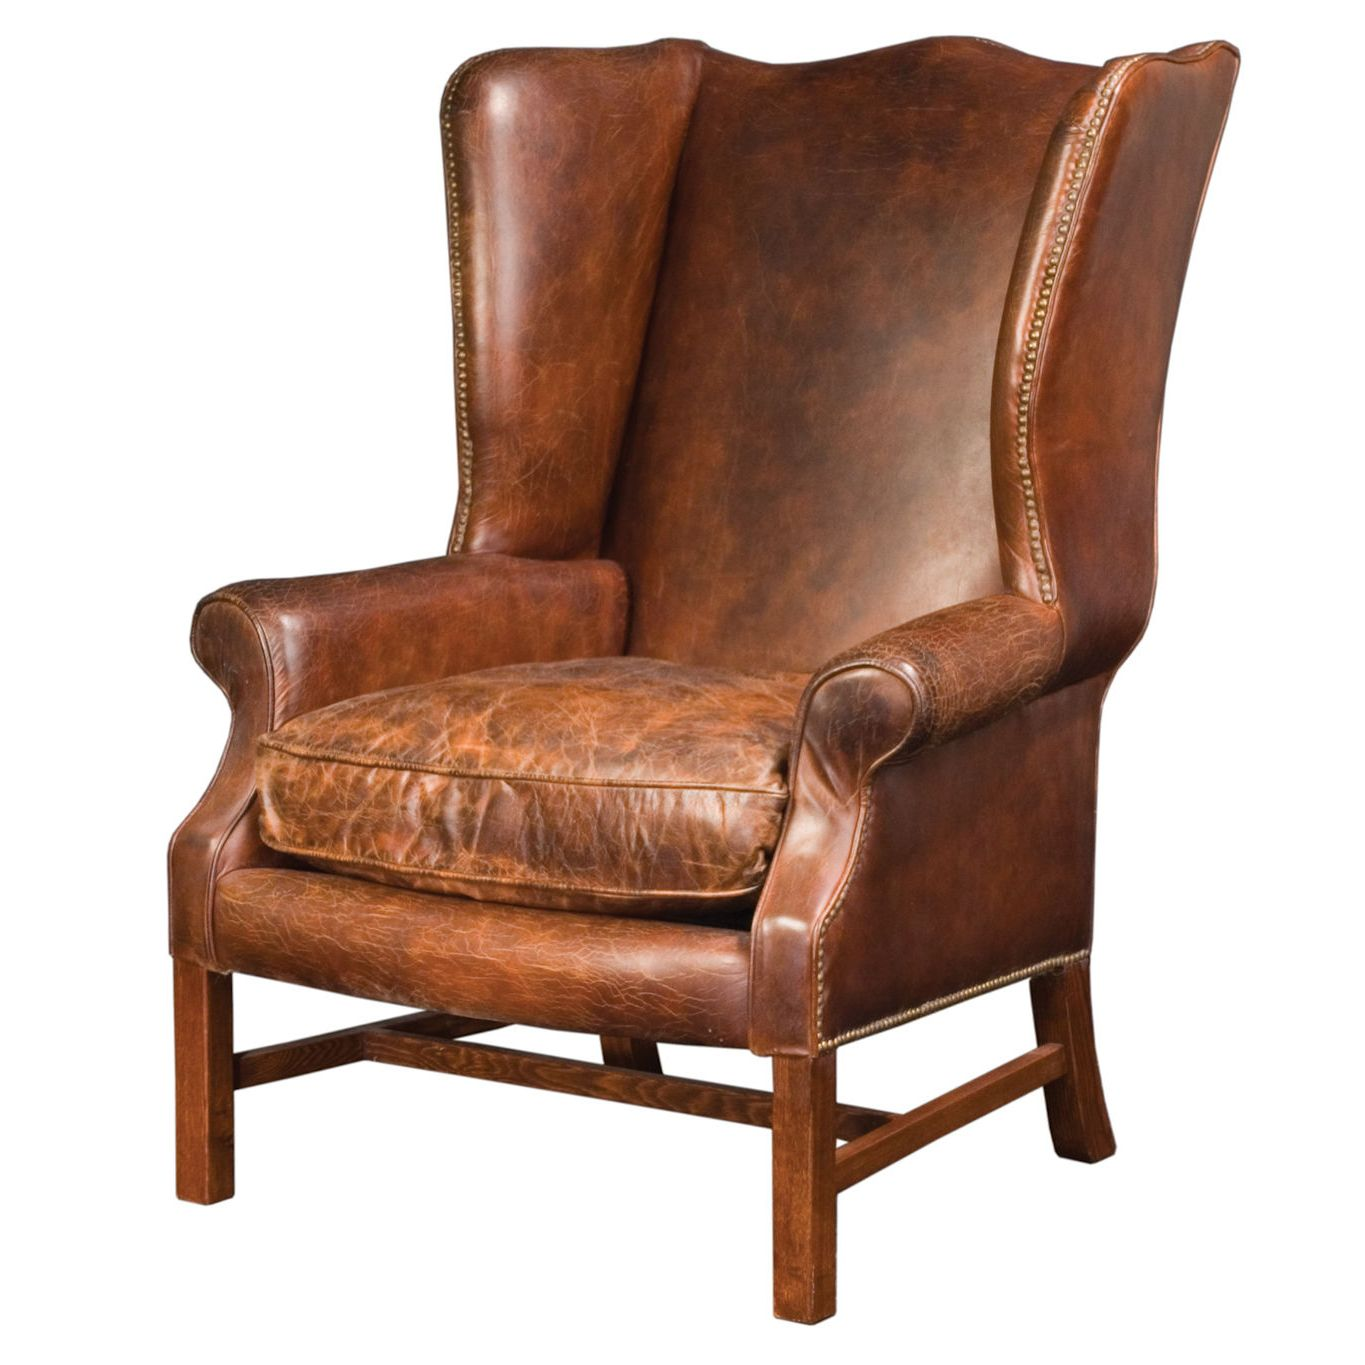 Image of Leather Wingback Chair pretty  leather chairs